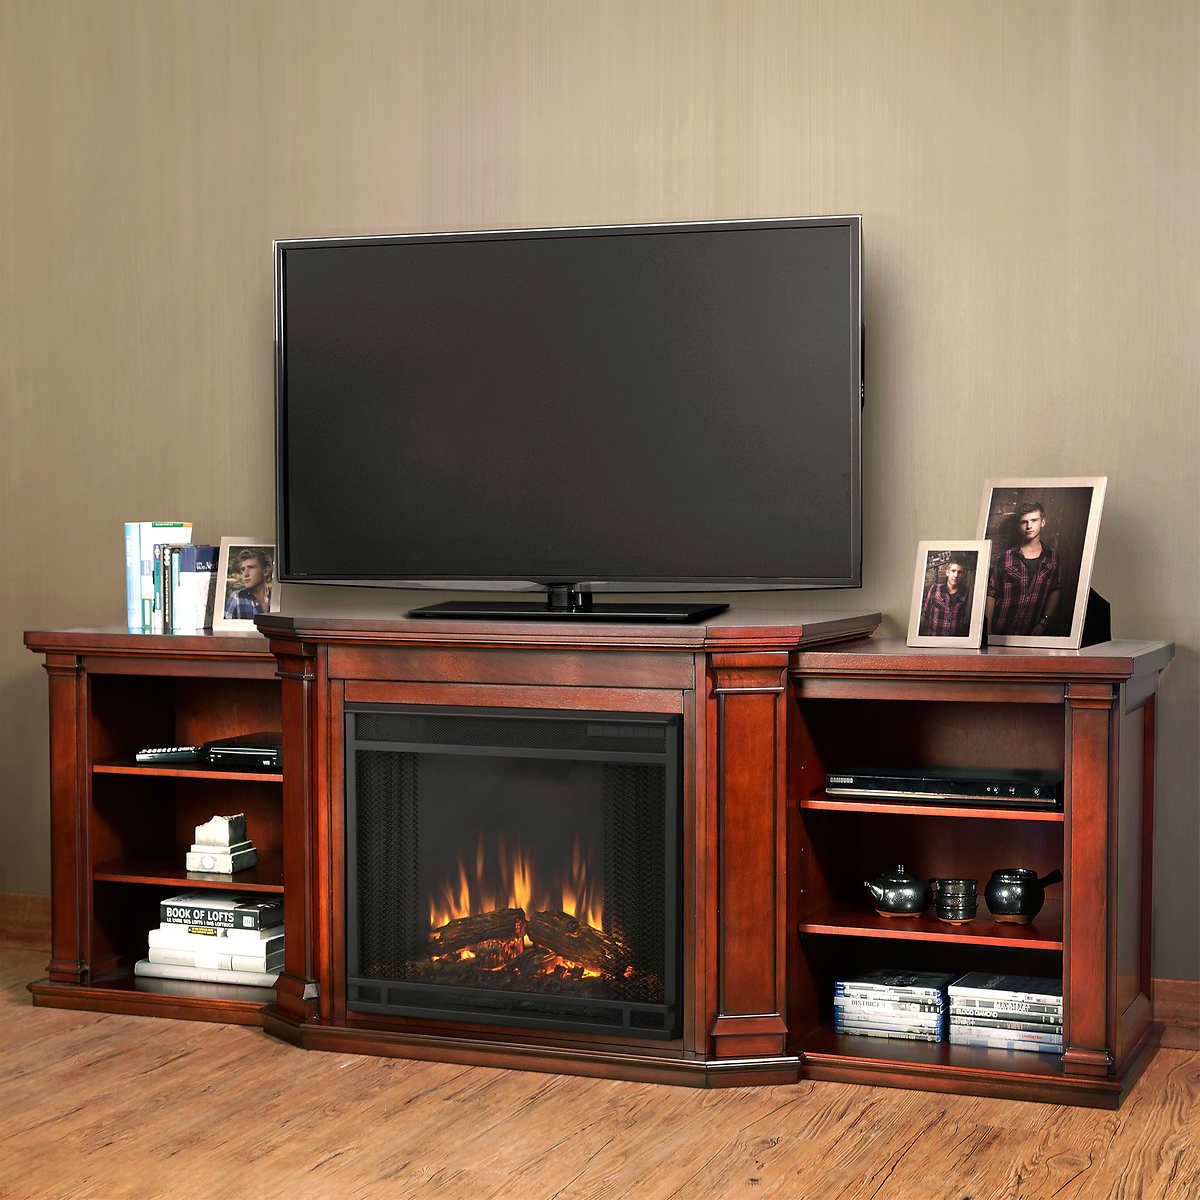 Electric Fireplaces Costco - Costco electric fireplace